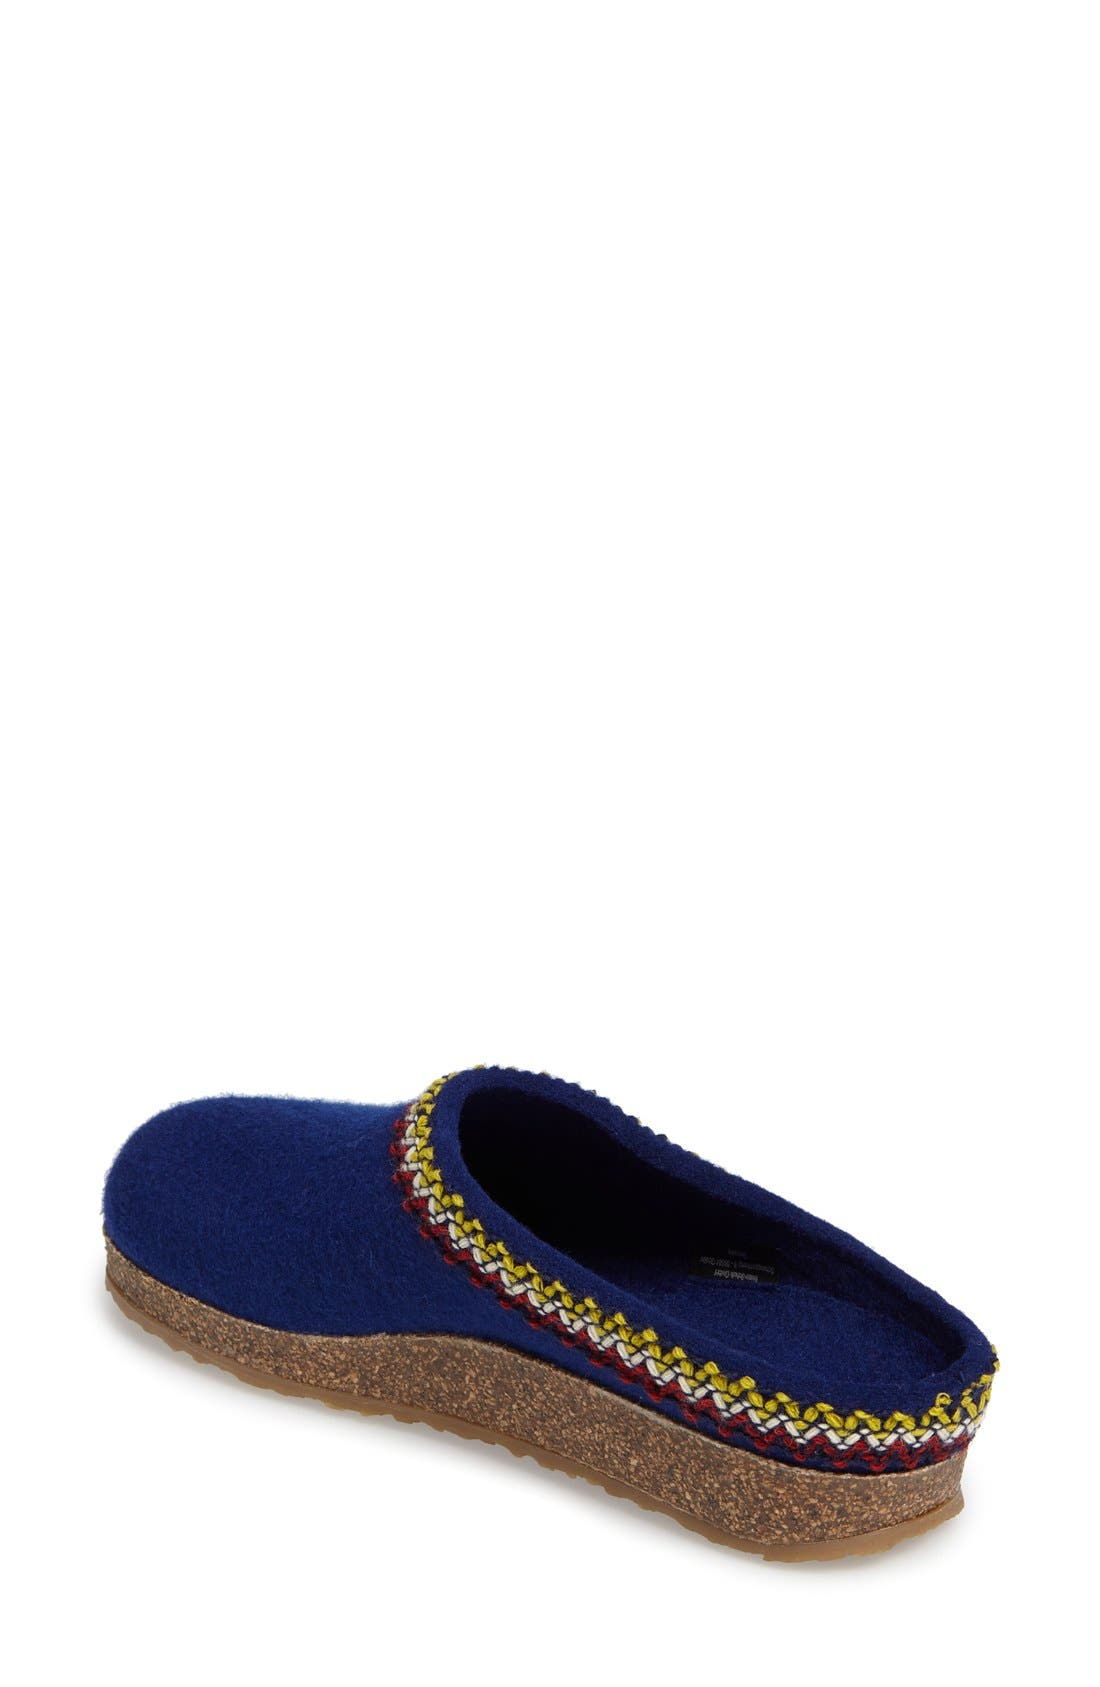 Zigzag Slipper,                             Alternate thumbnail 18, color,